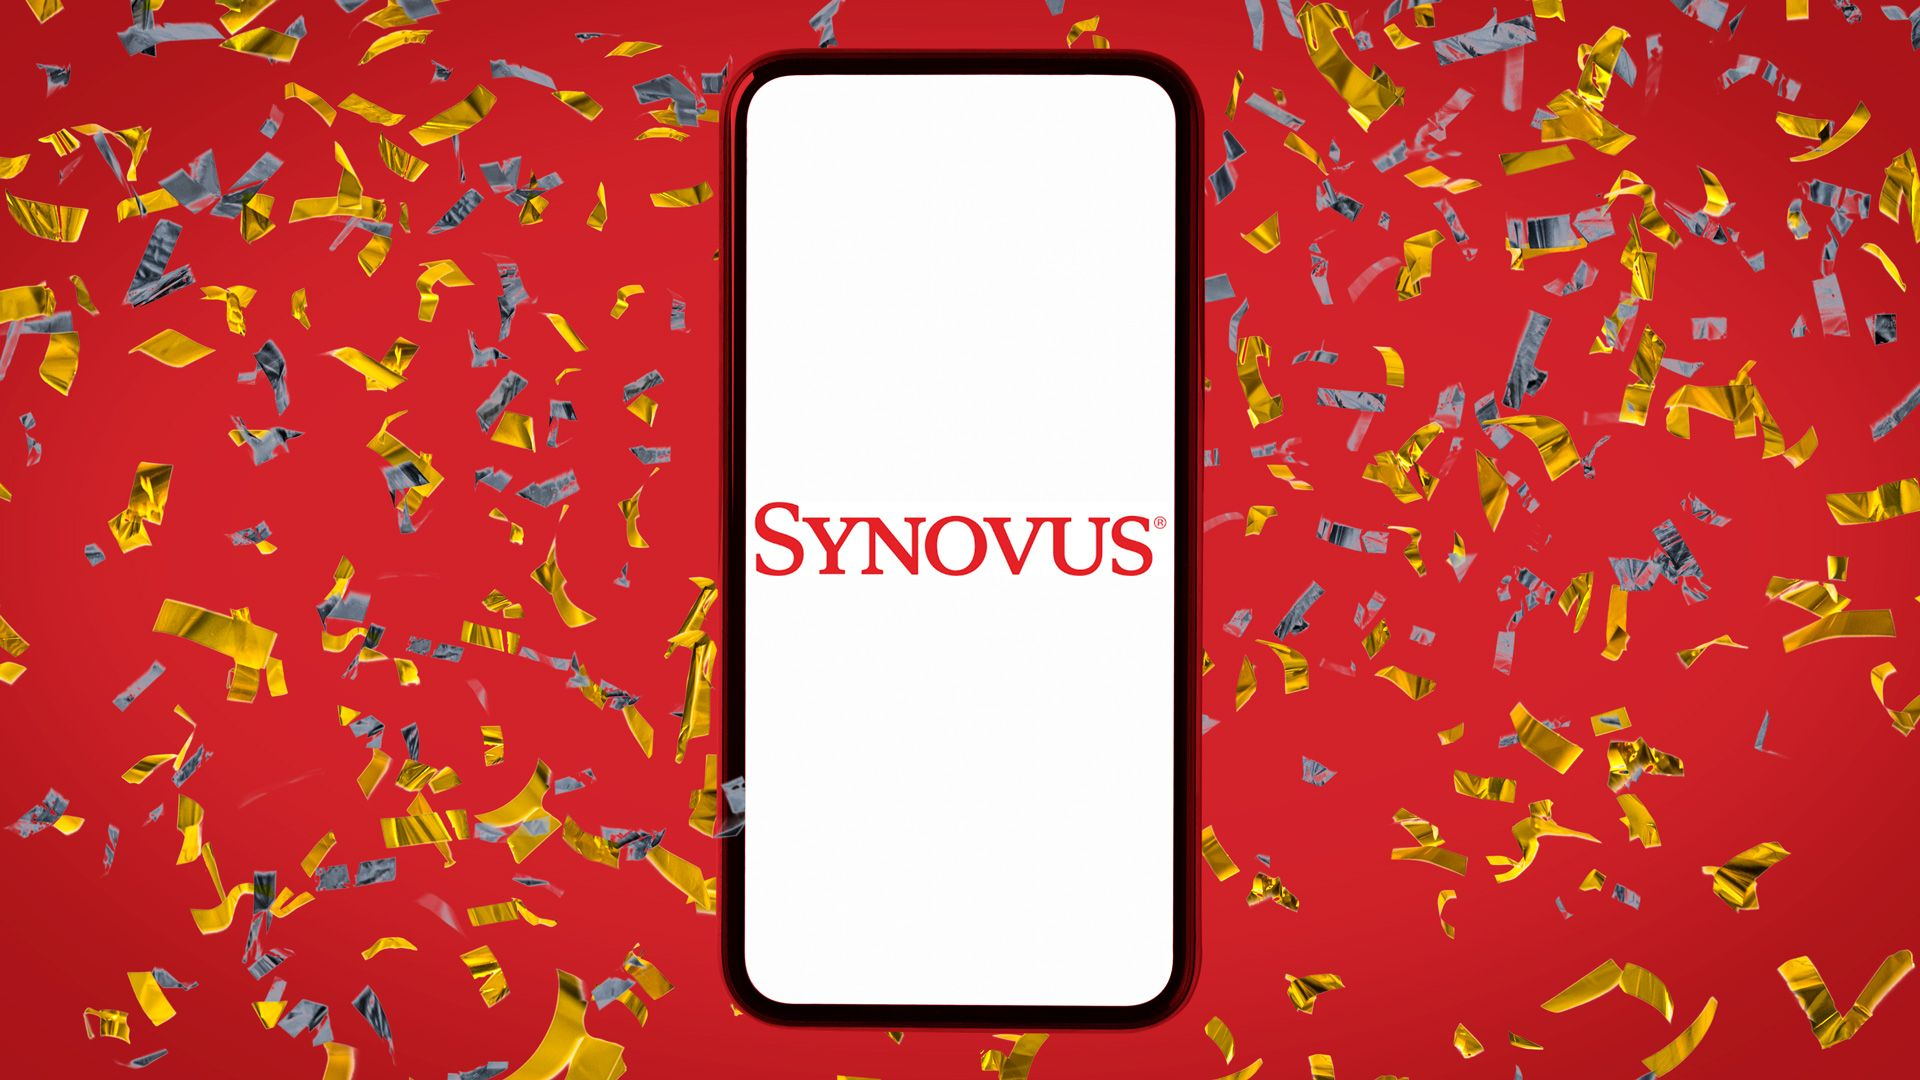 Synovus bank promotions